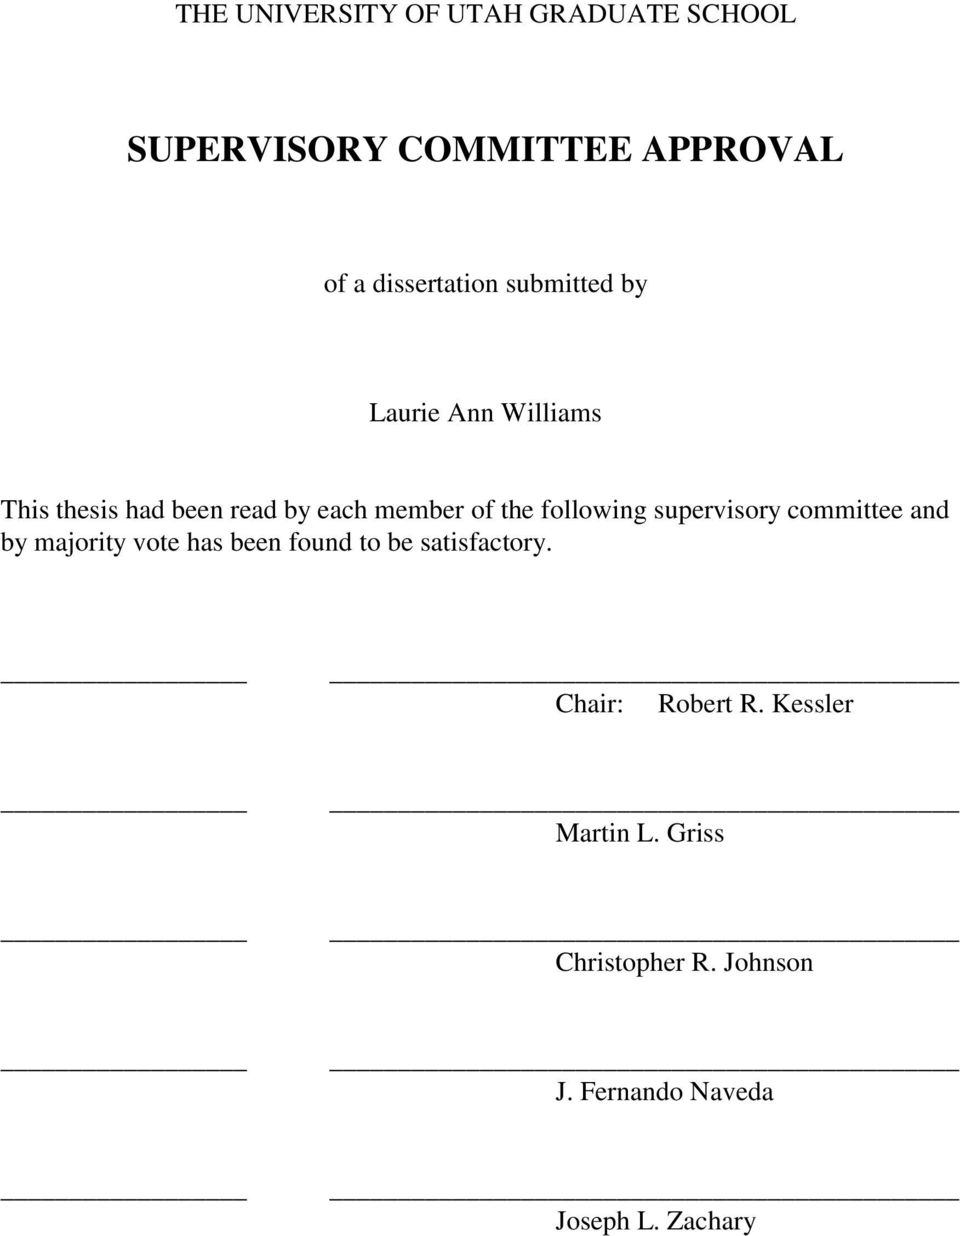 following supervisory committee and by majority vote has been found to be satisfactory.